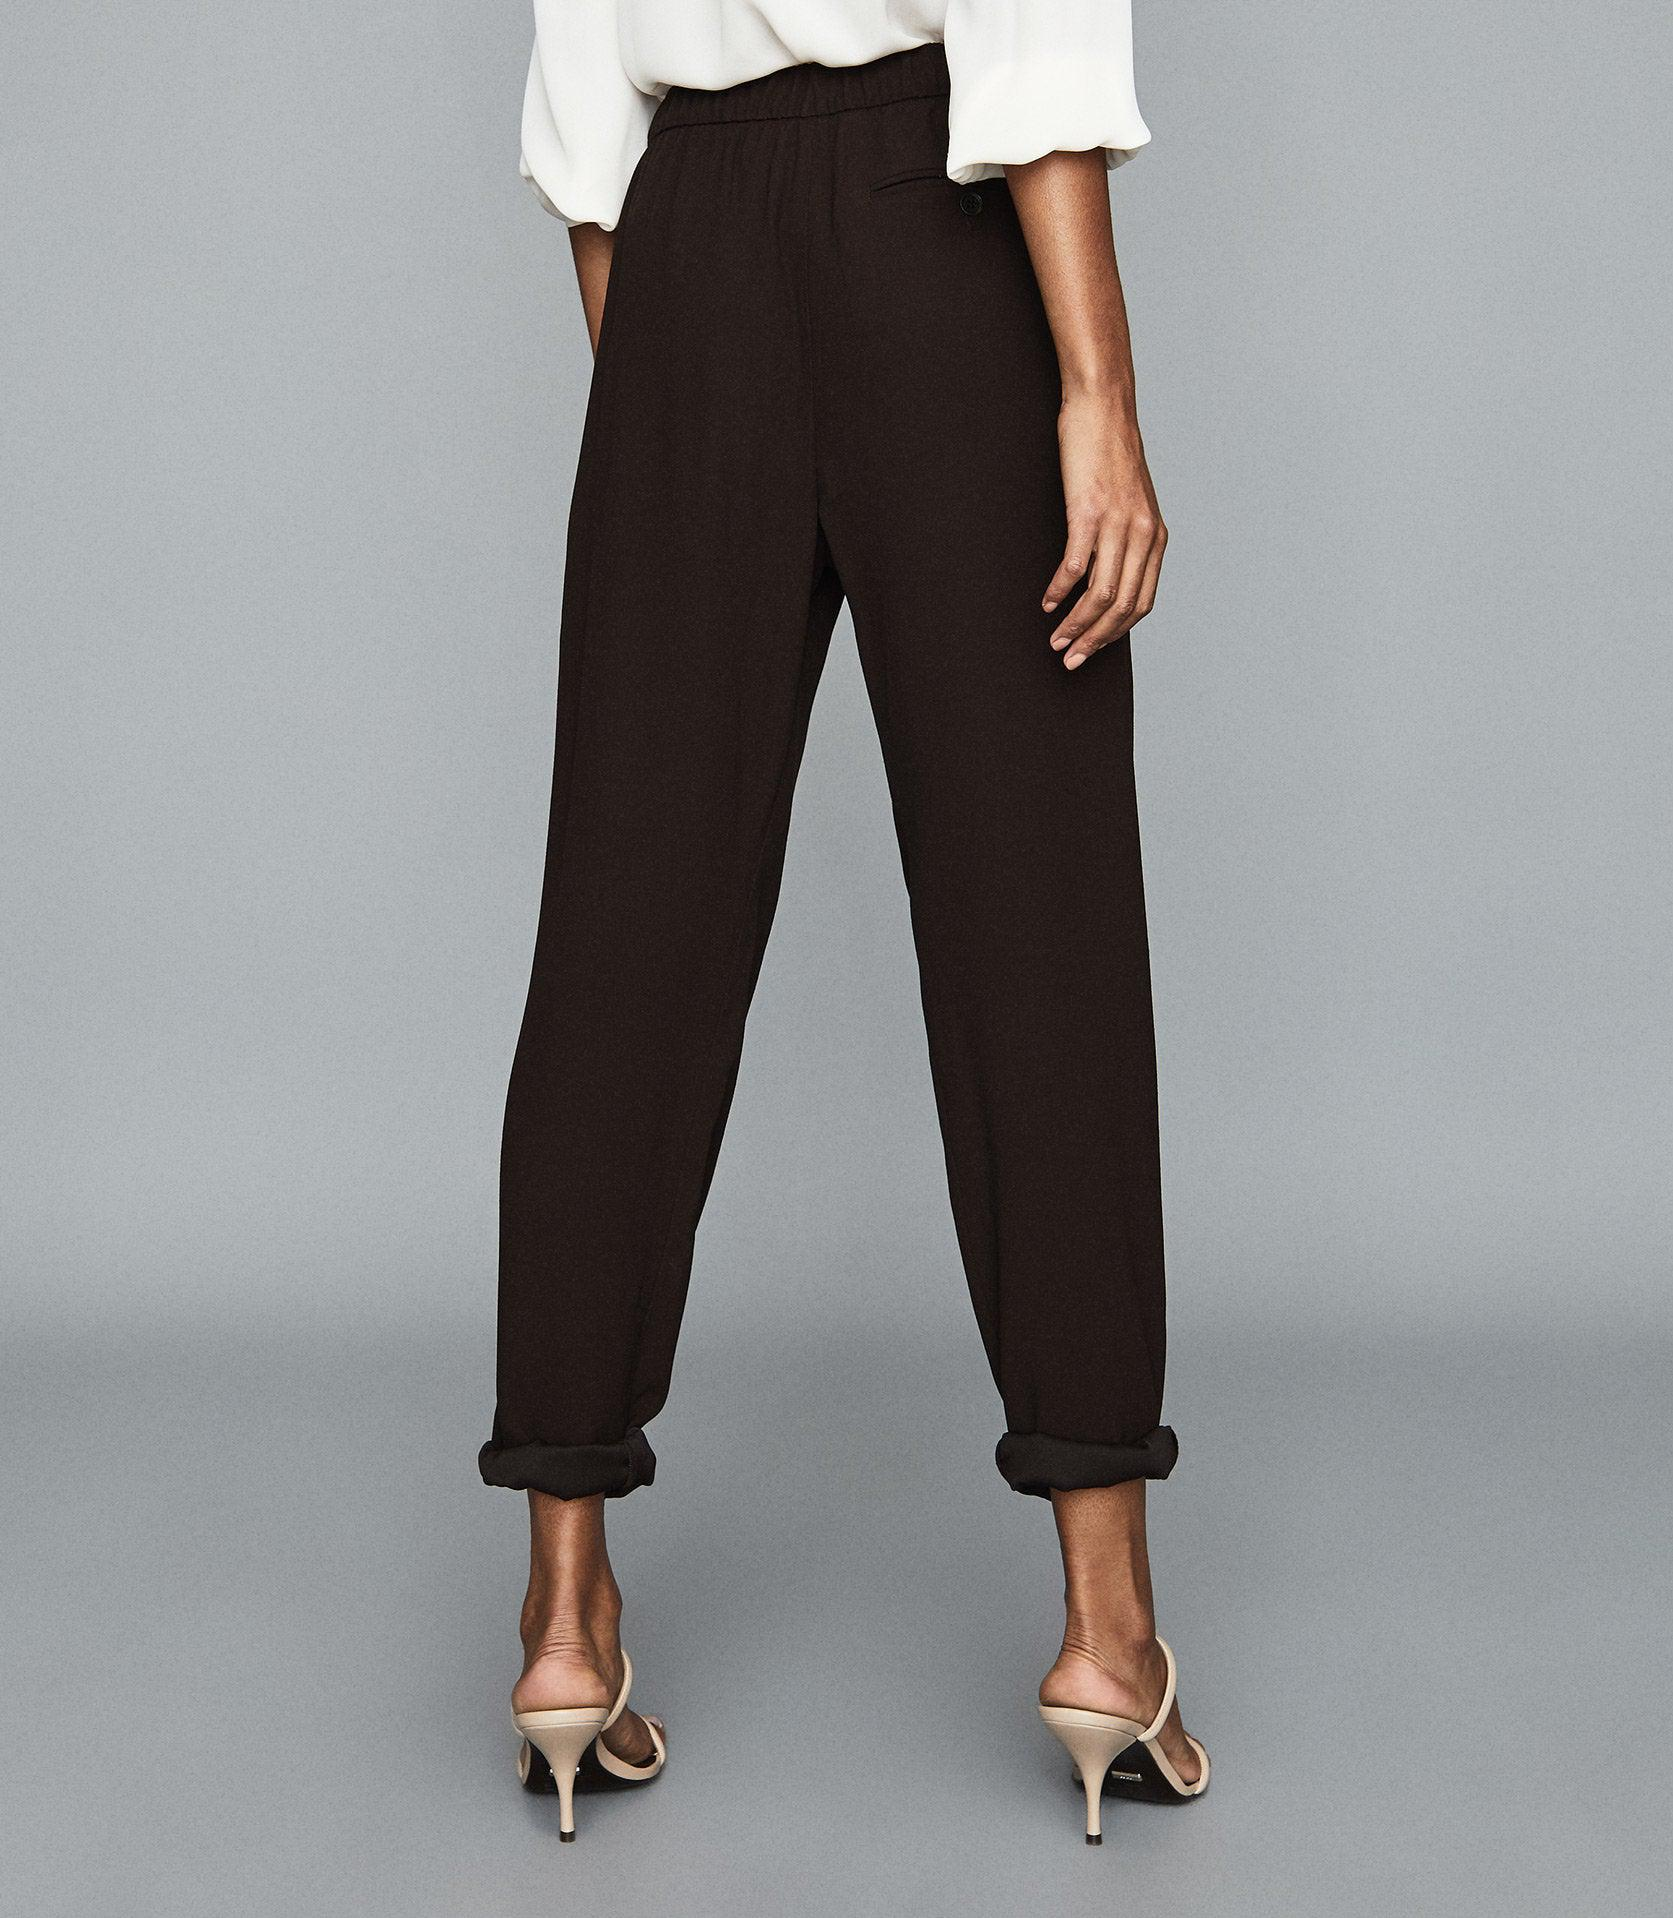 ROXY - RELAXED FIT TAPERED TROUSERS 3